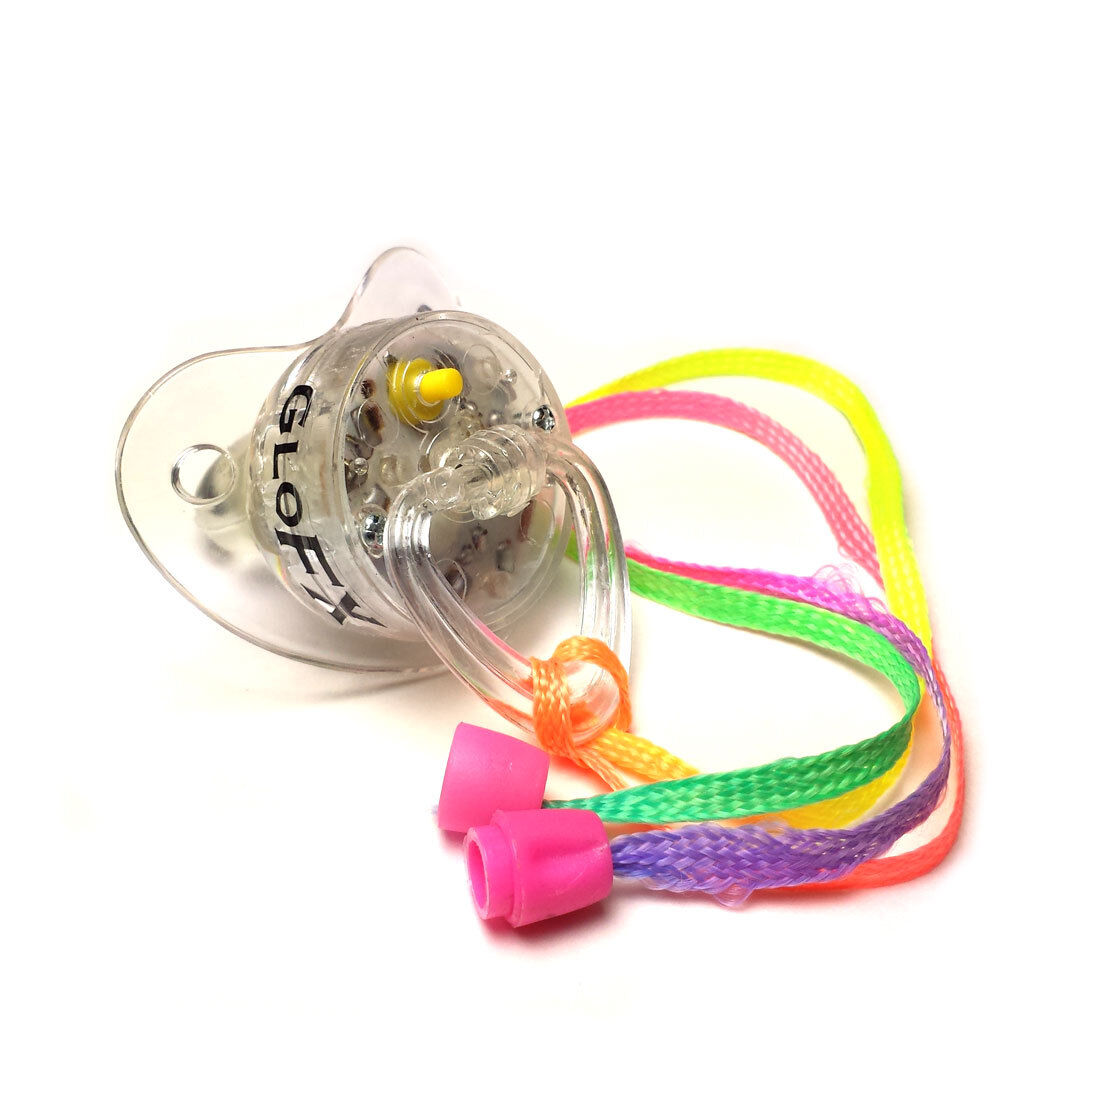 LED Pacifier kids Multi-color Super Bright LED Strobing Pacifier Baby Showers